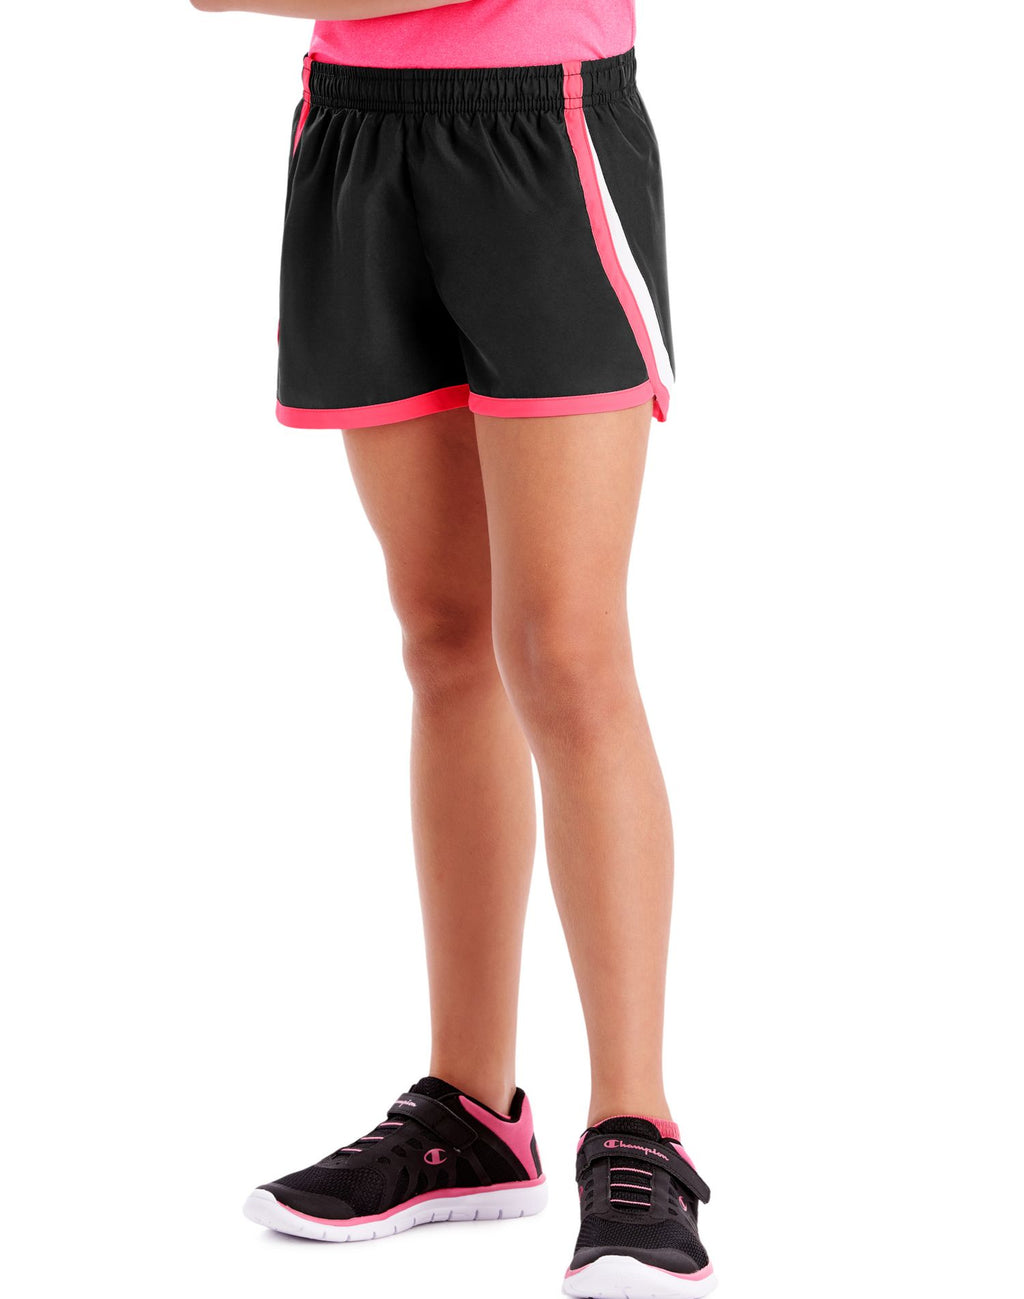 Hanes Girls Sport Woven Performance Training Shorts